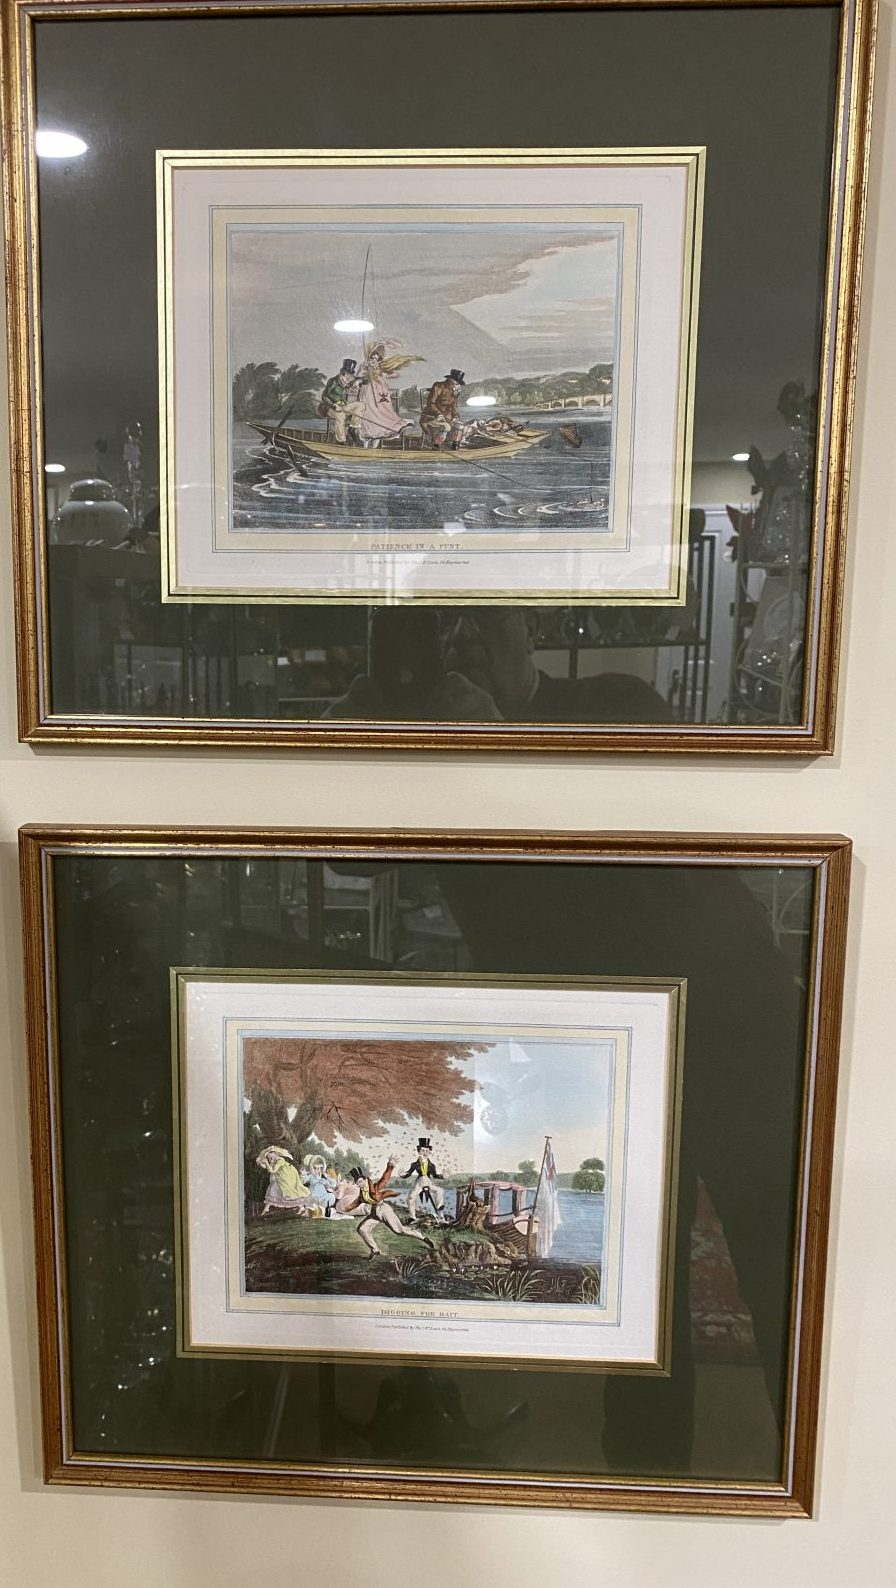 G4 - 2 from a set of 5, 19c fishing prints by Thomas McLean (1788-1875). Set of 5 £125 or £30 each